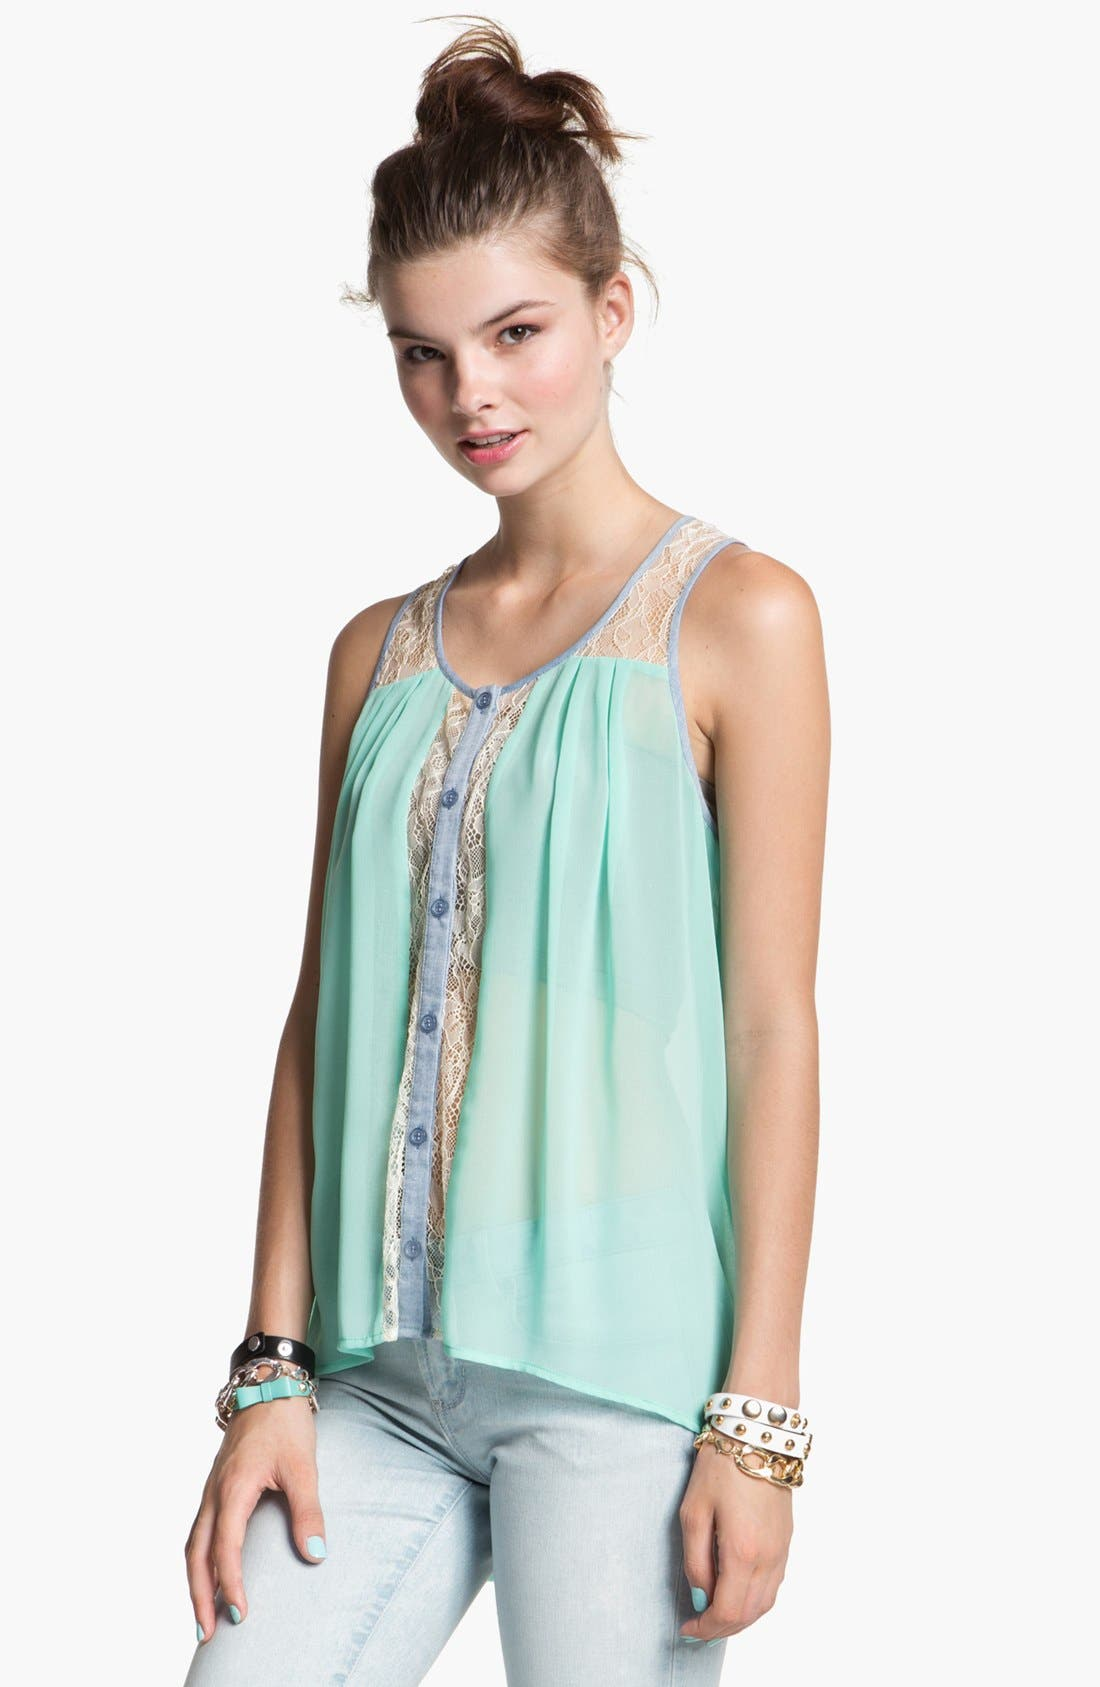 Alternate Image 1 Selected - Lush Button Front Tank Top (Juniors)